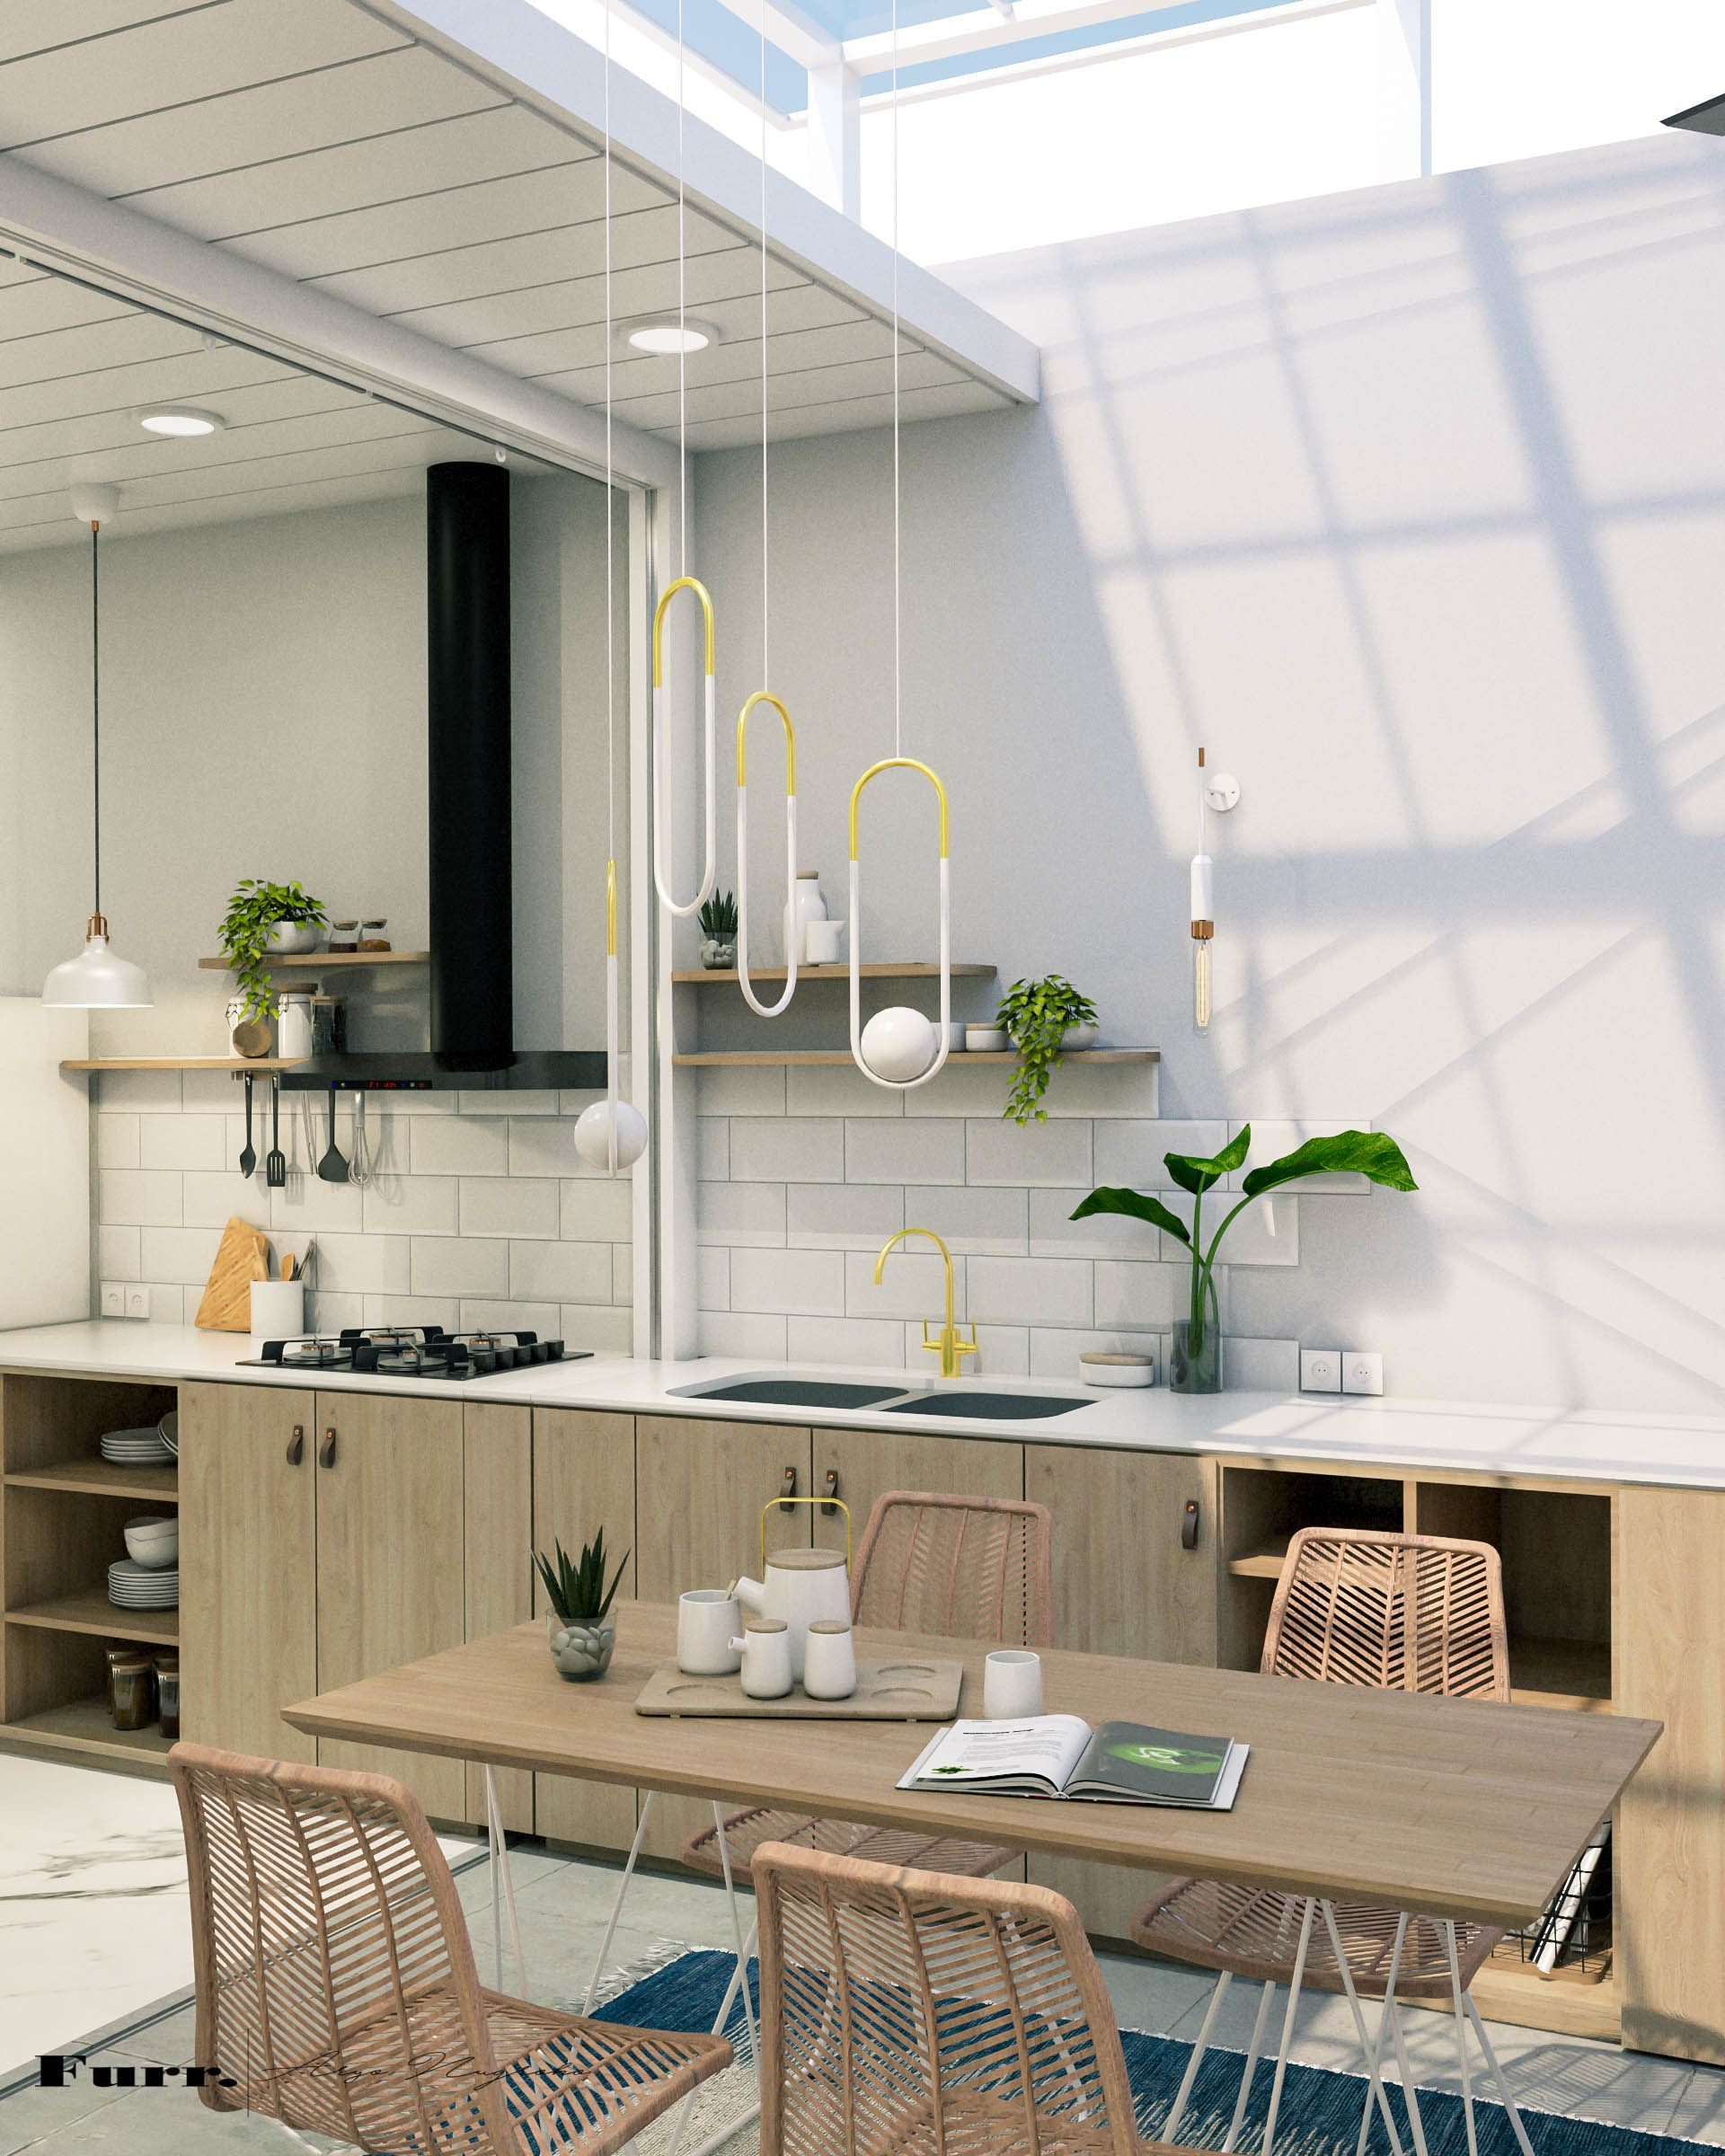 Interior projects for small house in bogor west java indonesia by furr design